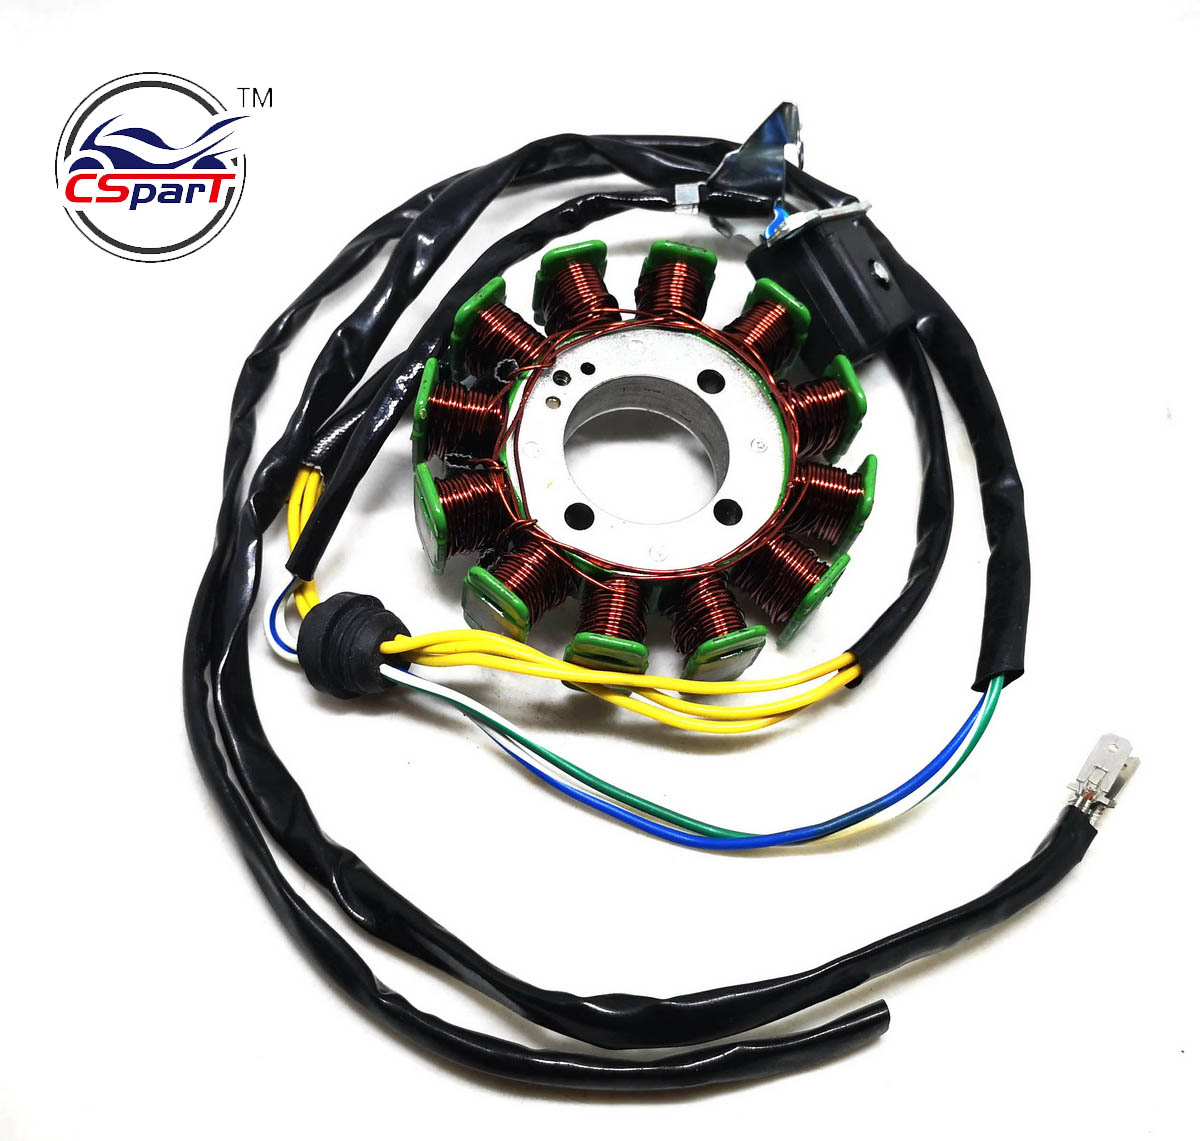 Magneto Stator 12 Pole Coil 5 Wire 200C 250CC CG Bashan Shineray Jinling Taotao Dirt Pit Bike ATV Quad Parts